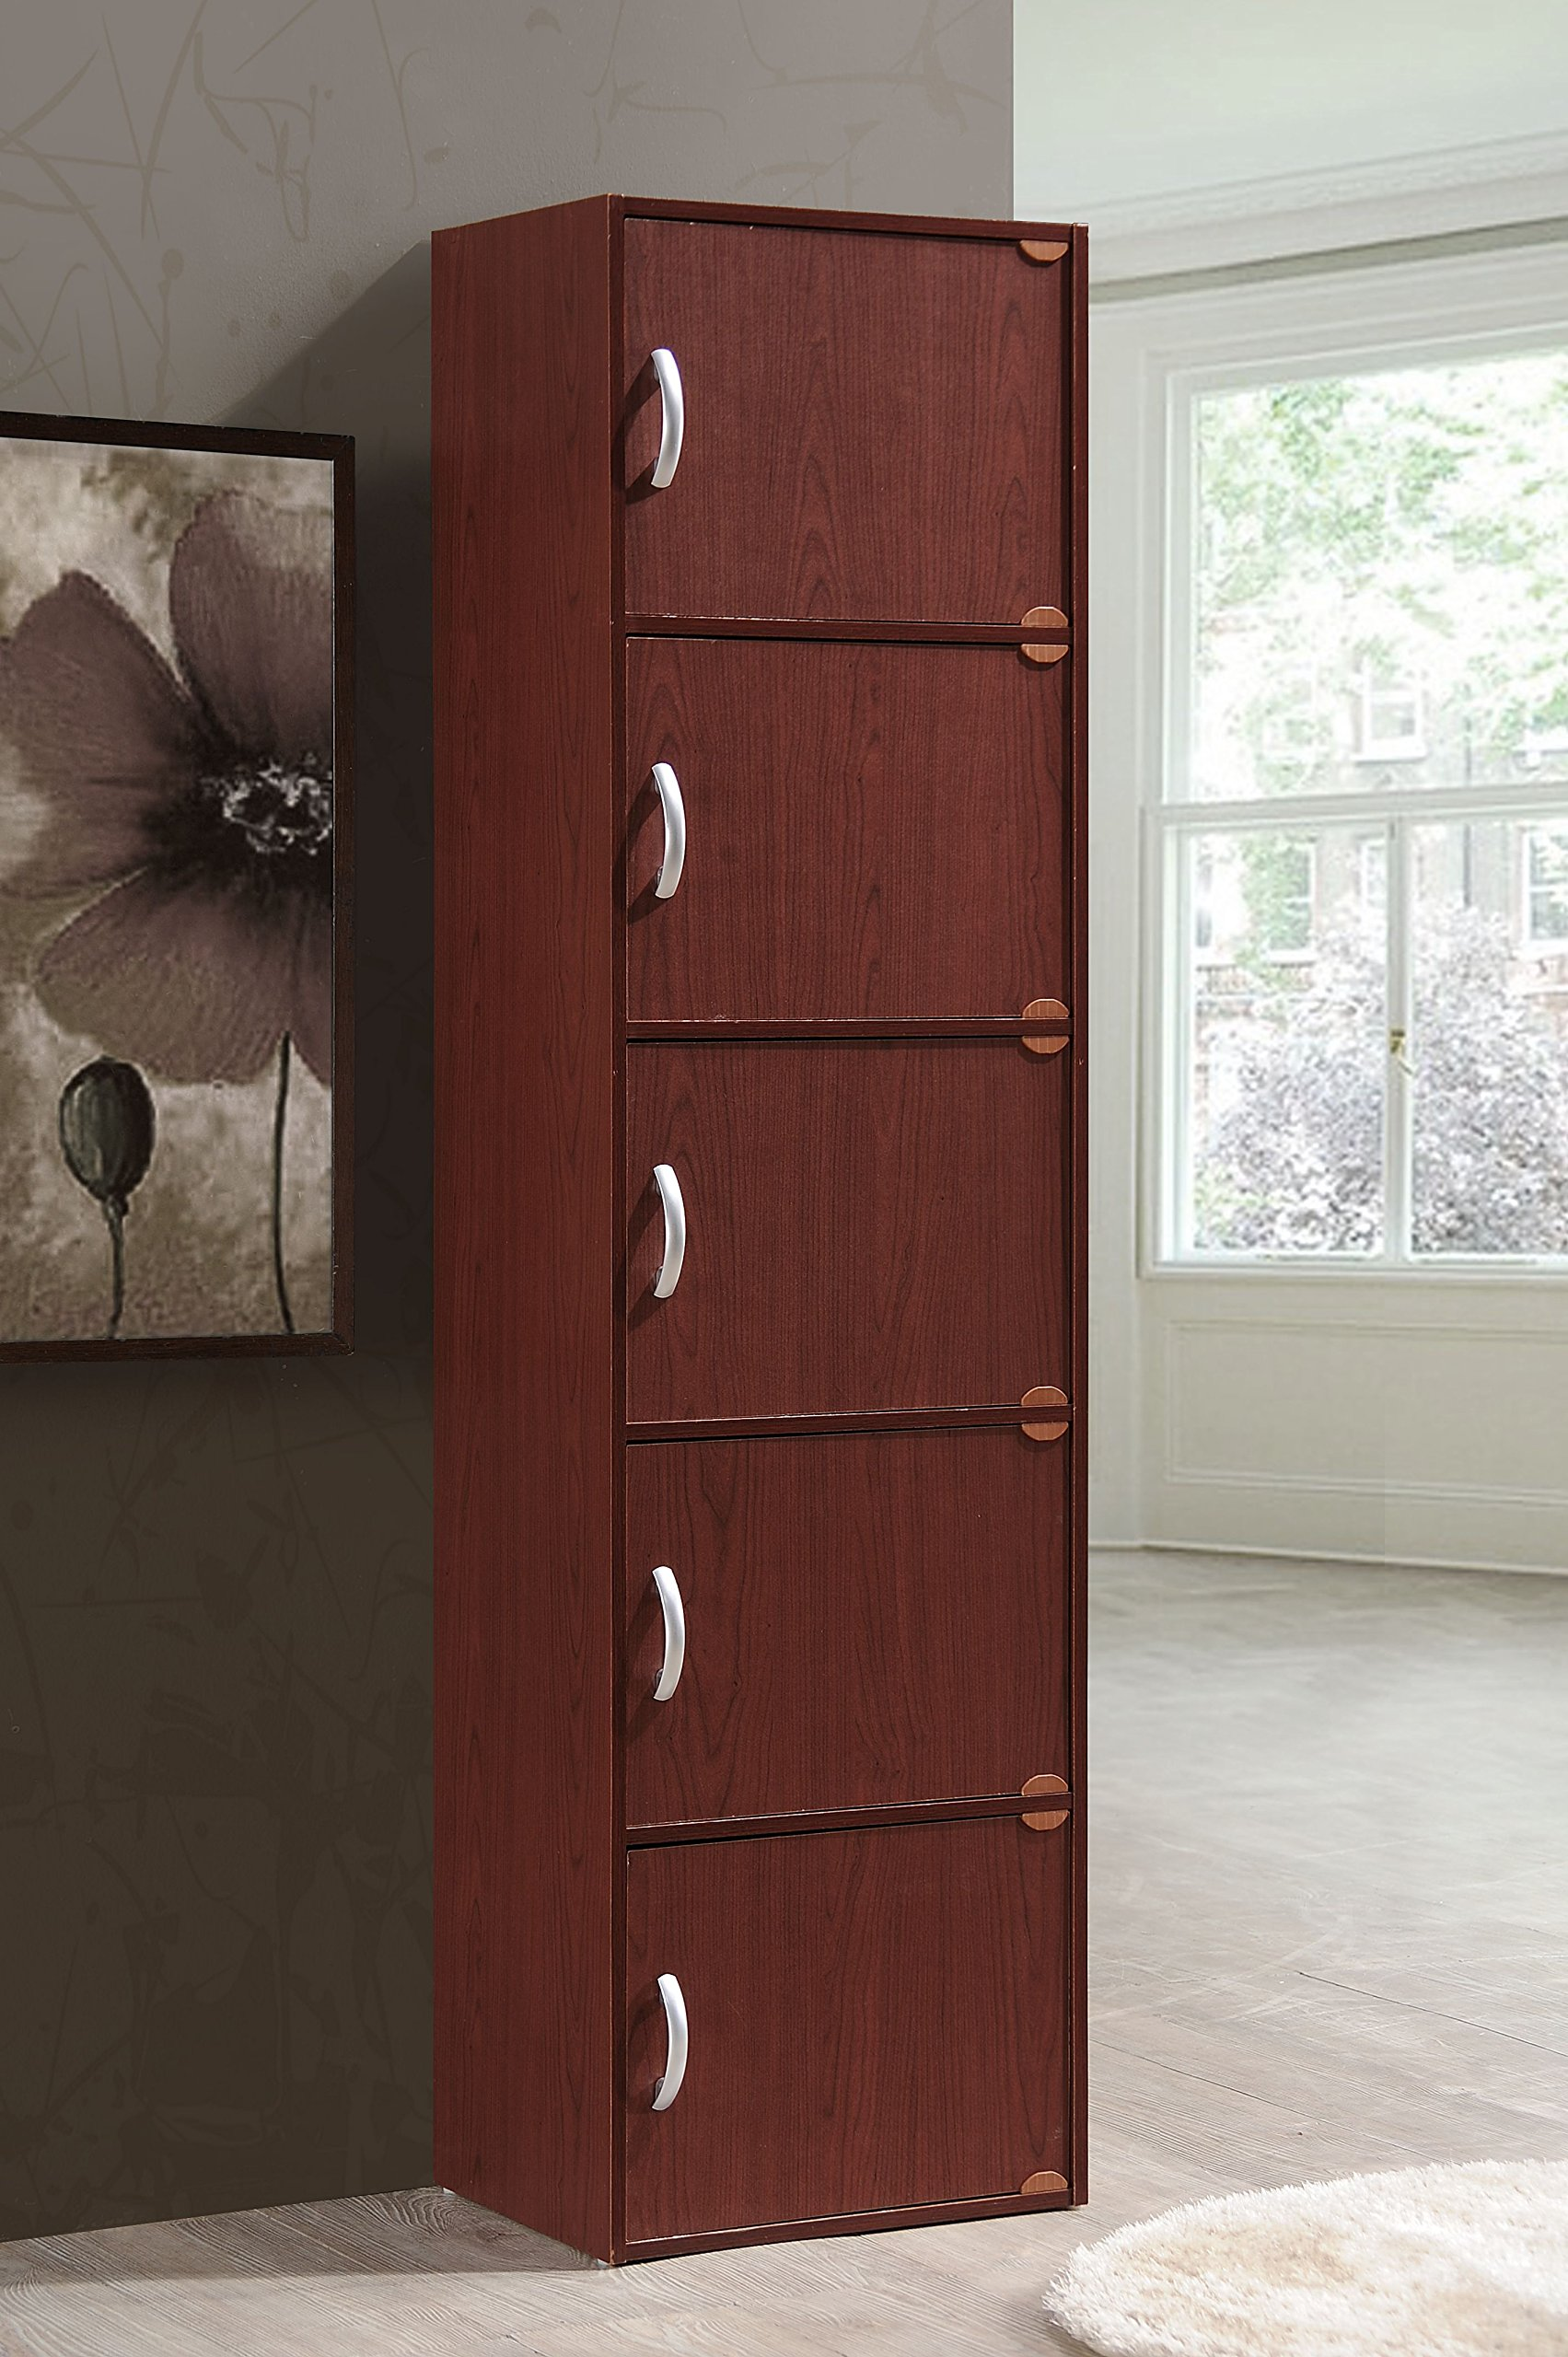 Hodedah 5 Door, Five Shleves, Enclosed Storage Cabinet, Mahogany by HODEDAH IMPORT (Image #2)